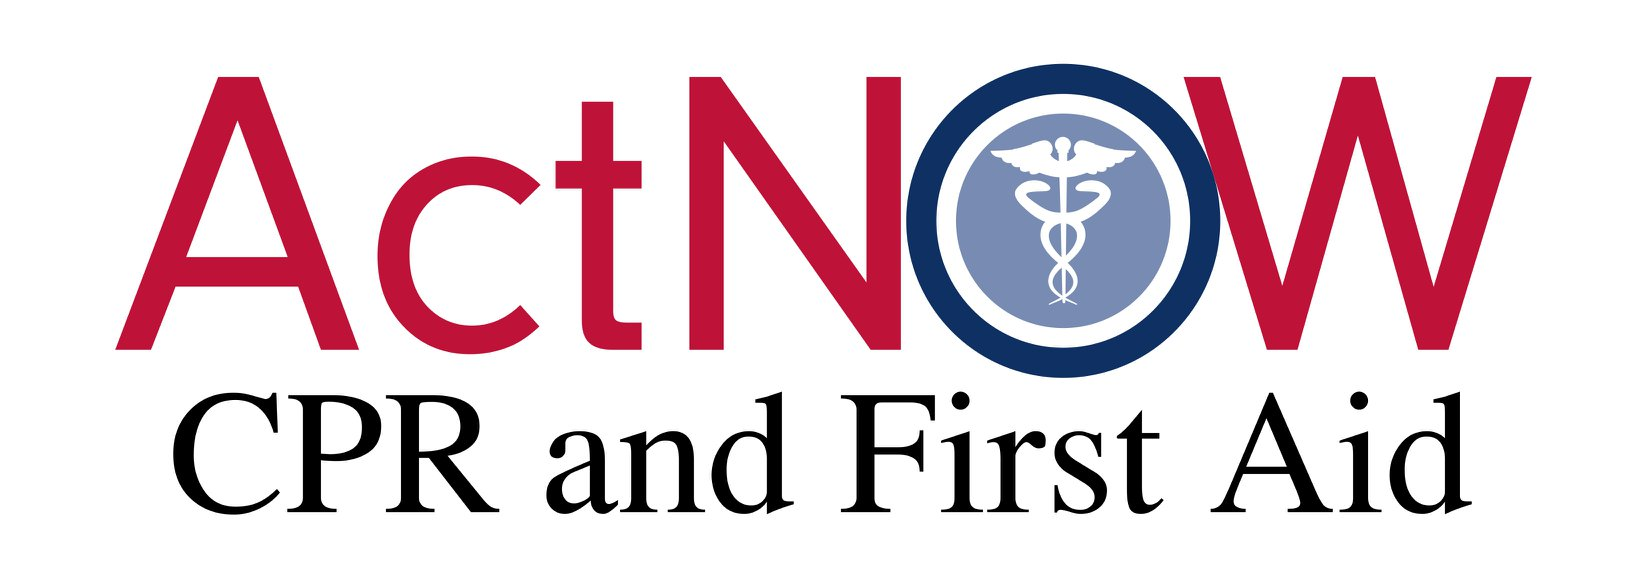 Act Now CPR and First Aid Logo with David Lamb